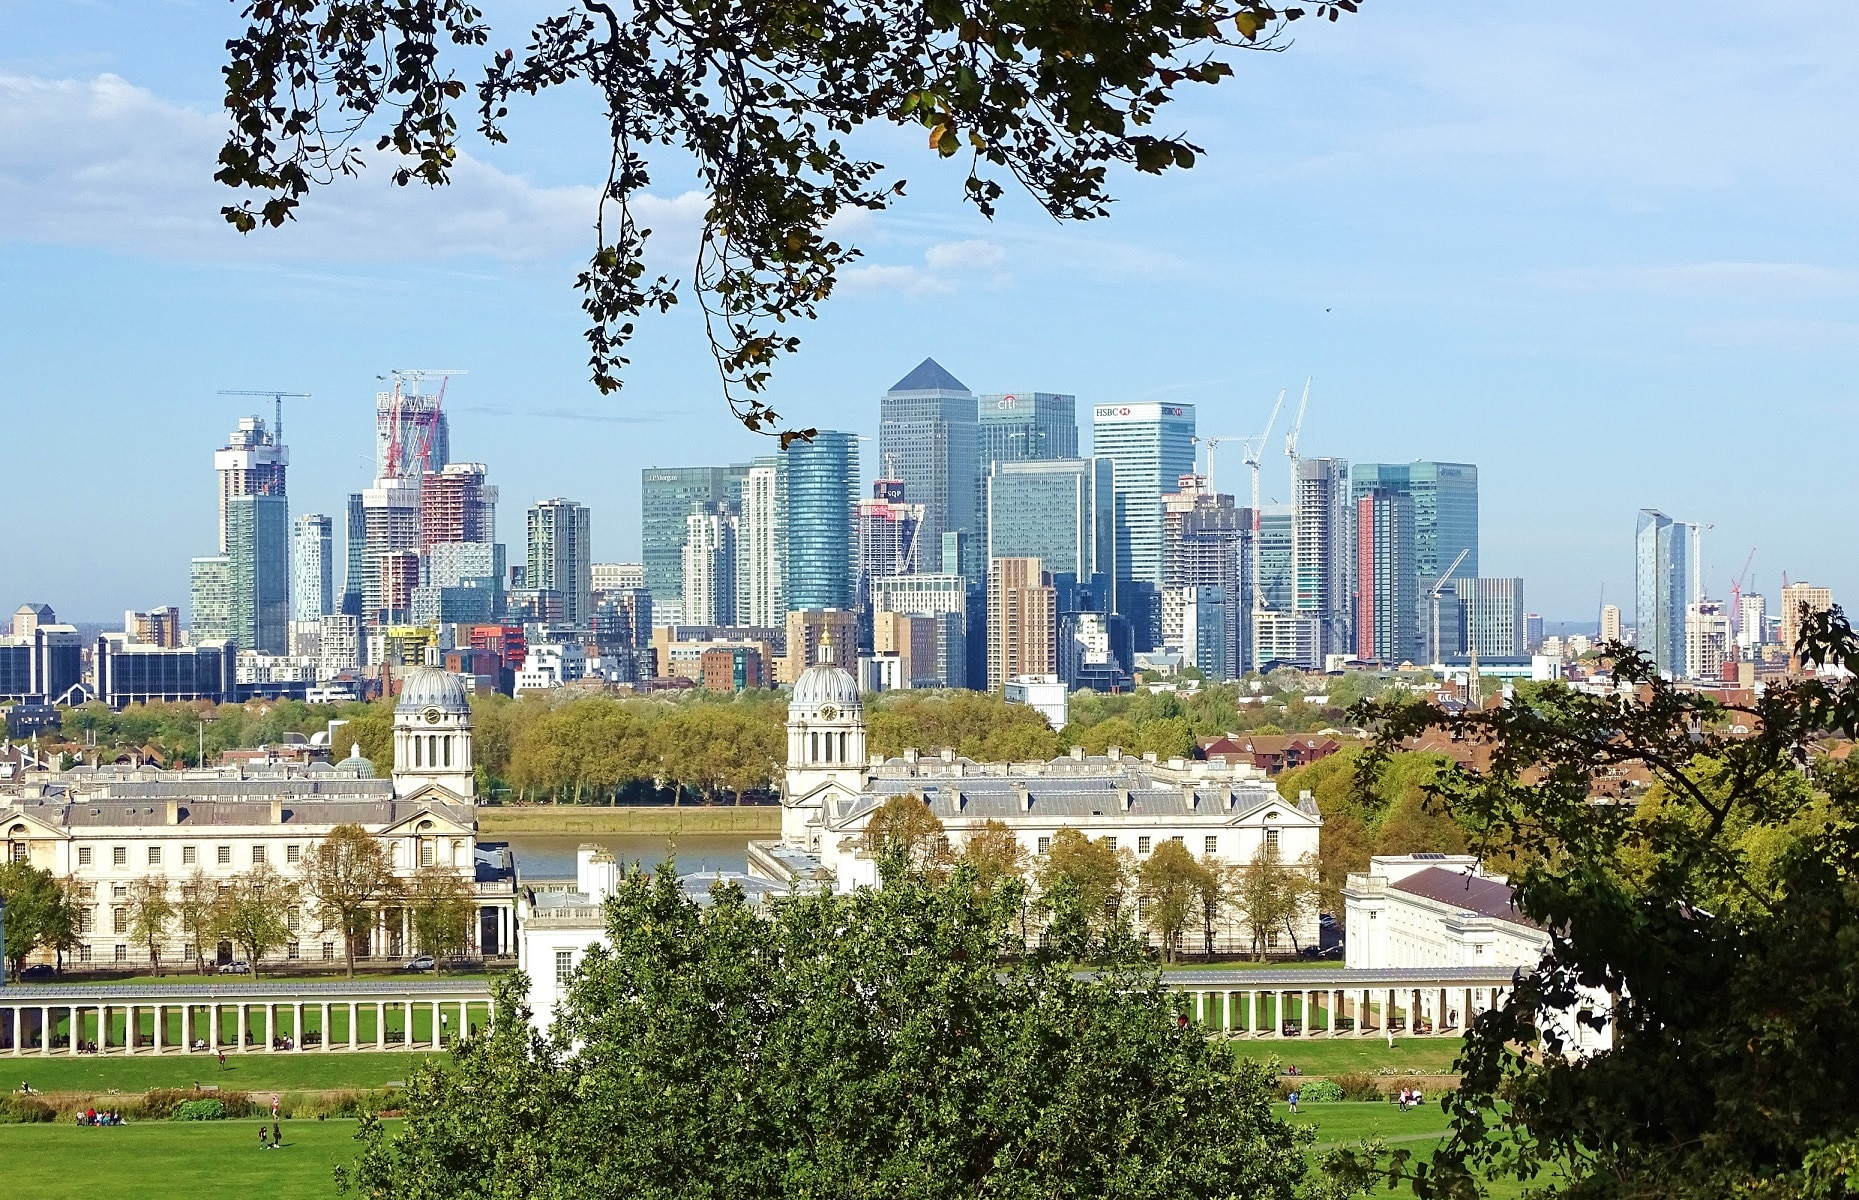 Get the best views of the City from Greenwich